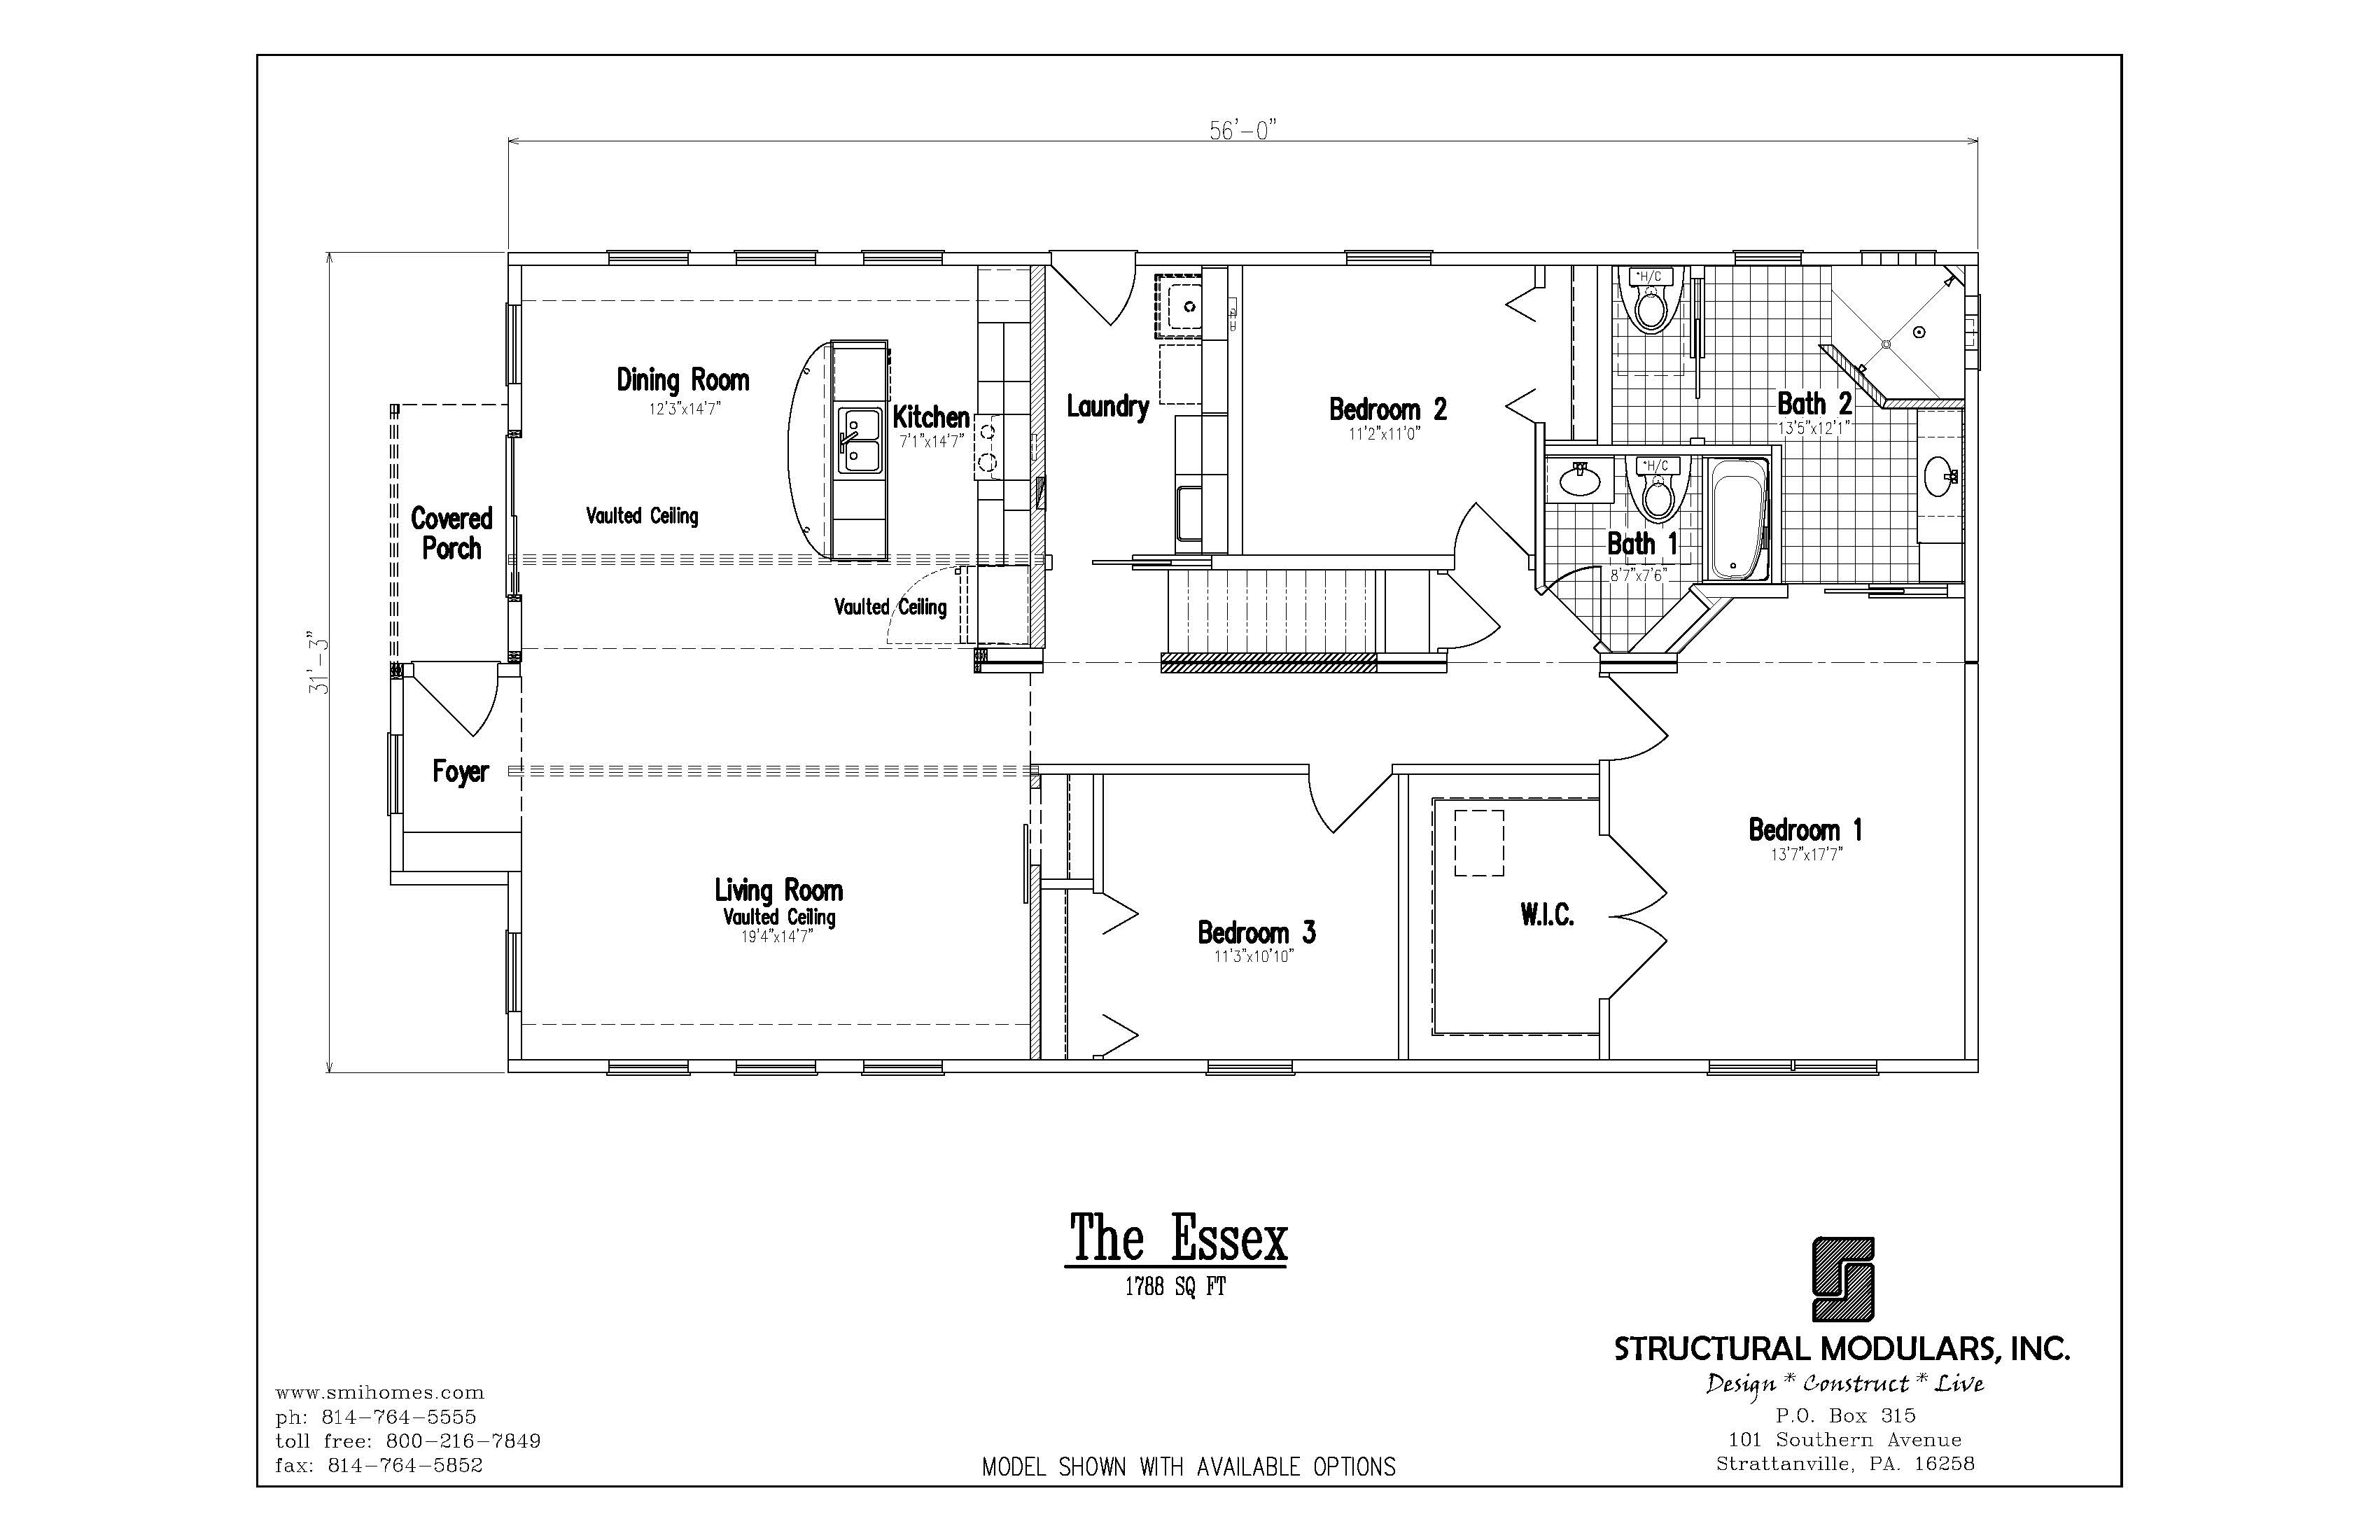 The Essex Floor Plan